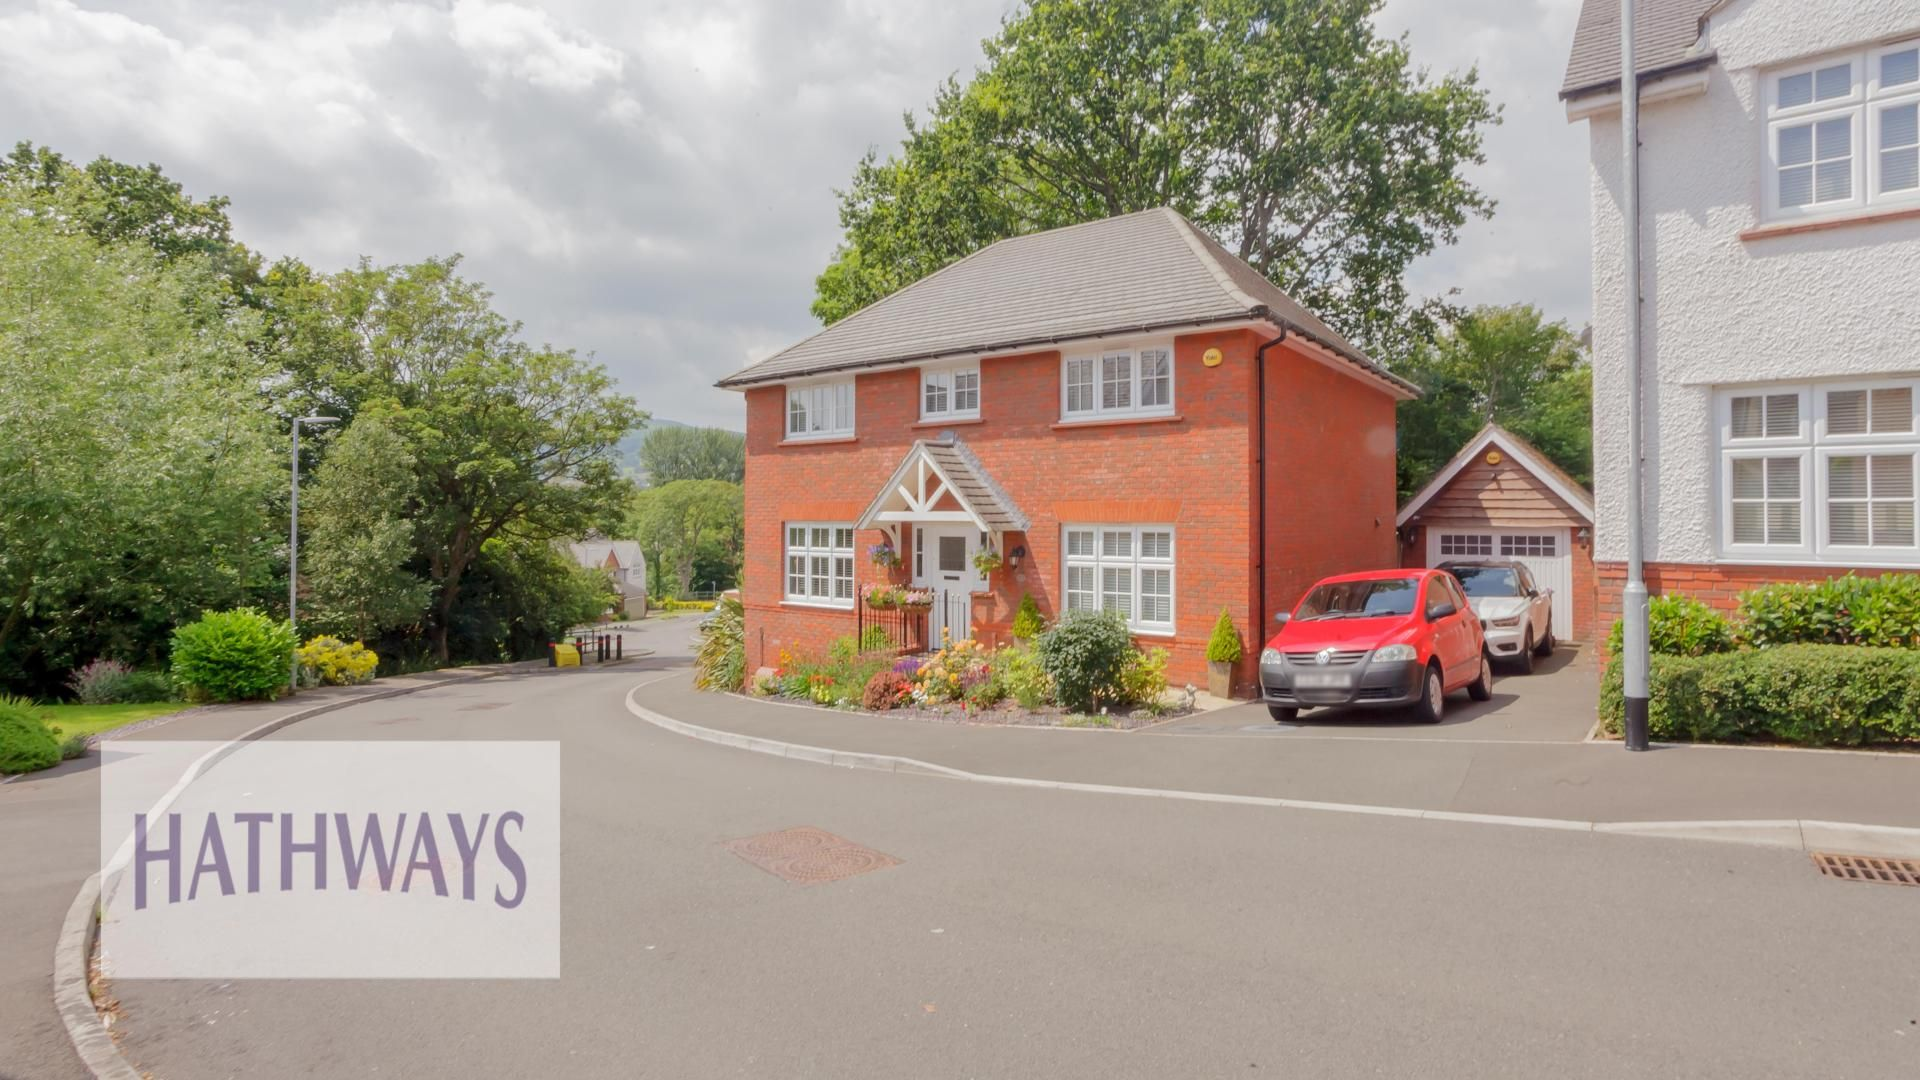 4 bed house for sale in Coed Y Felin, NP4